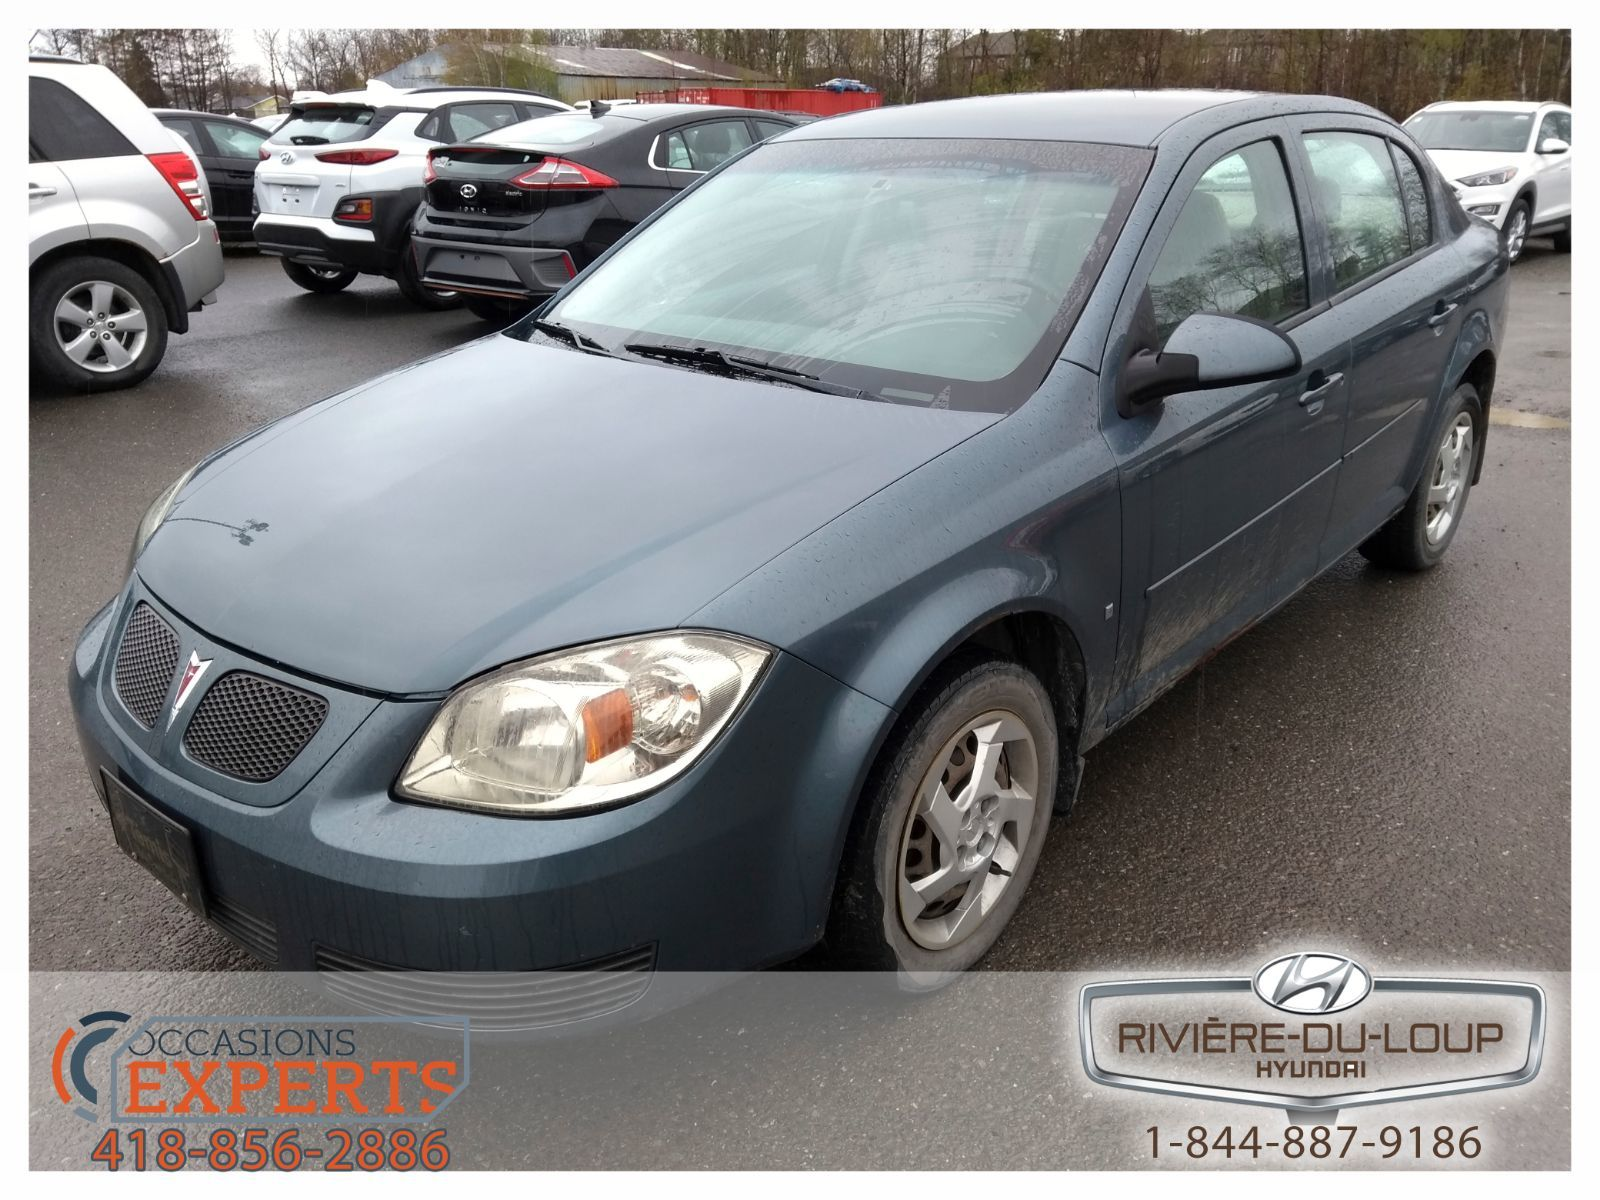 hight resolution of used 2007 pontiac g5 se in riviere du loup used inventory hyundai rivi re du loup in riviere du loup quebec